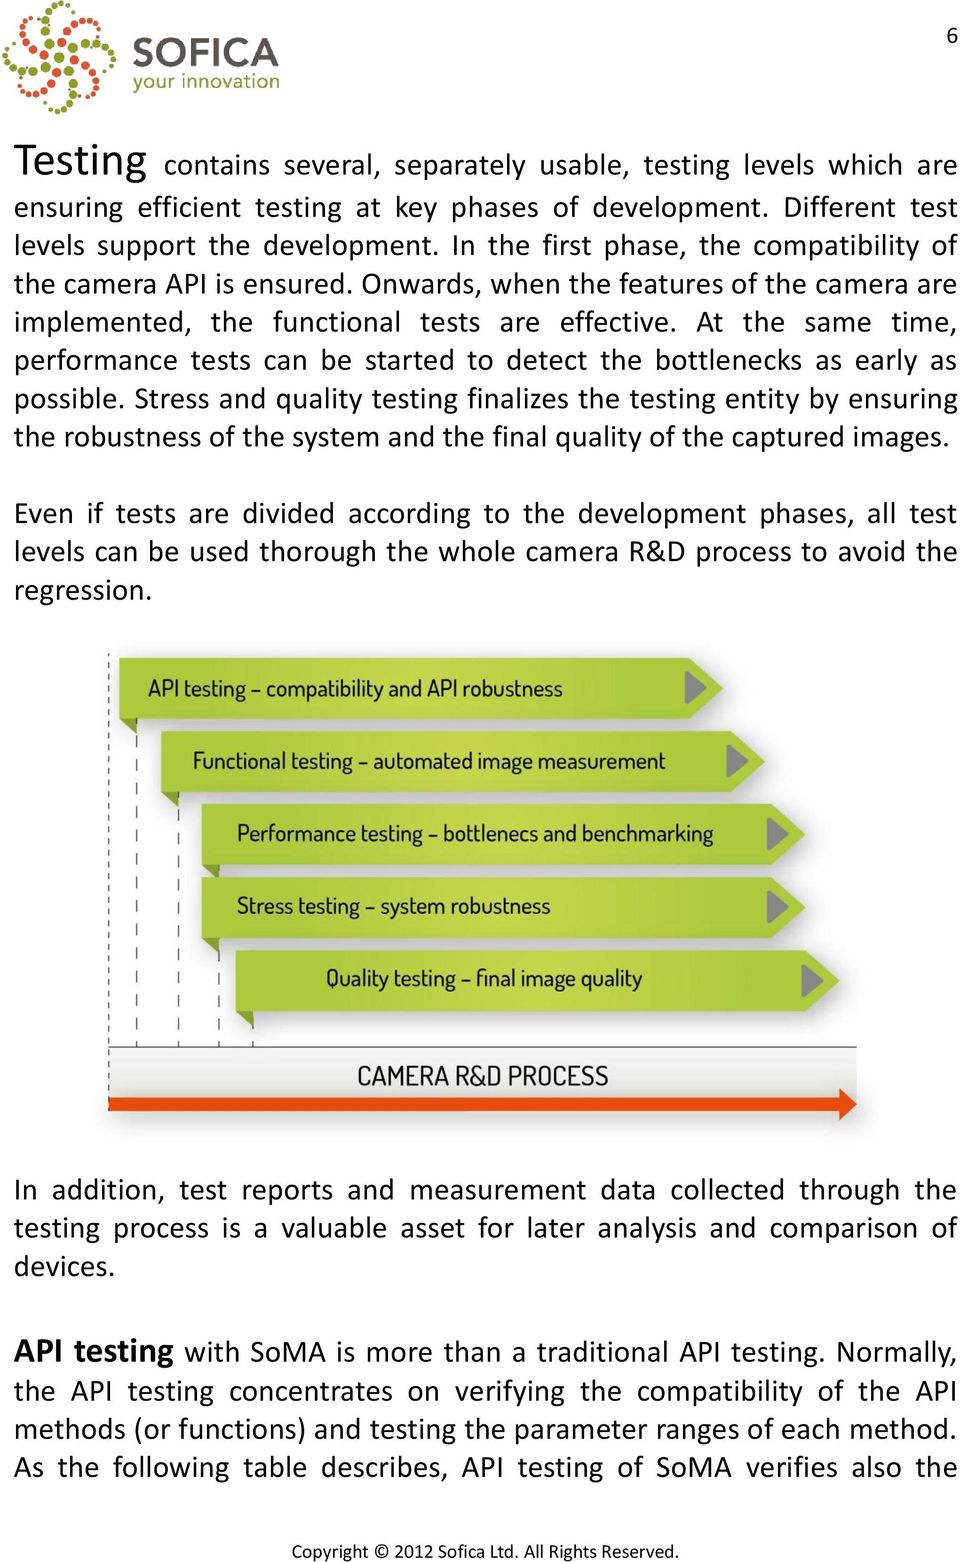 At the same time, performance tests can be started to detect the bottlenecks as early as possible.